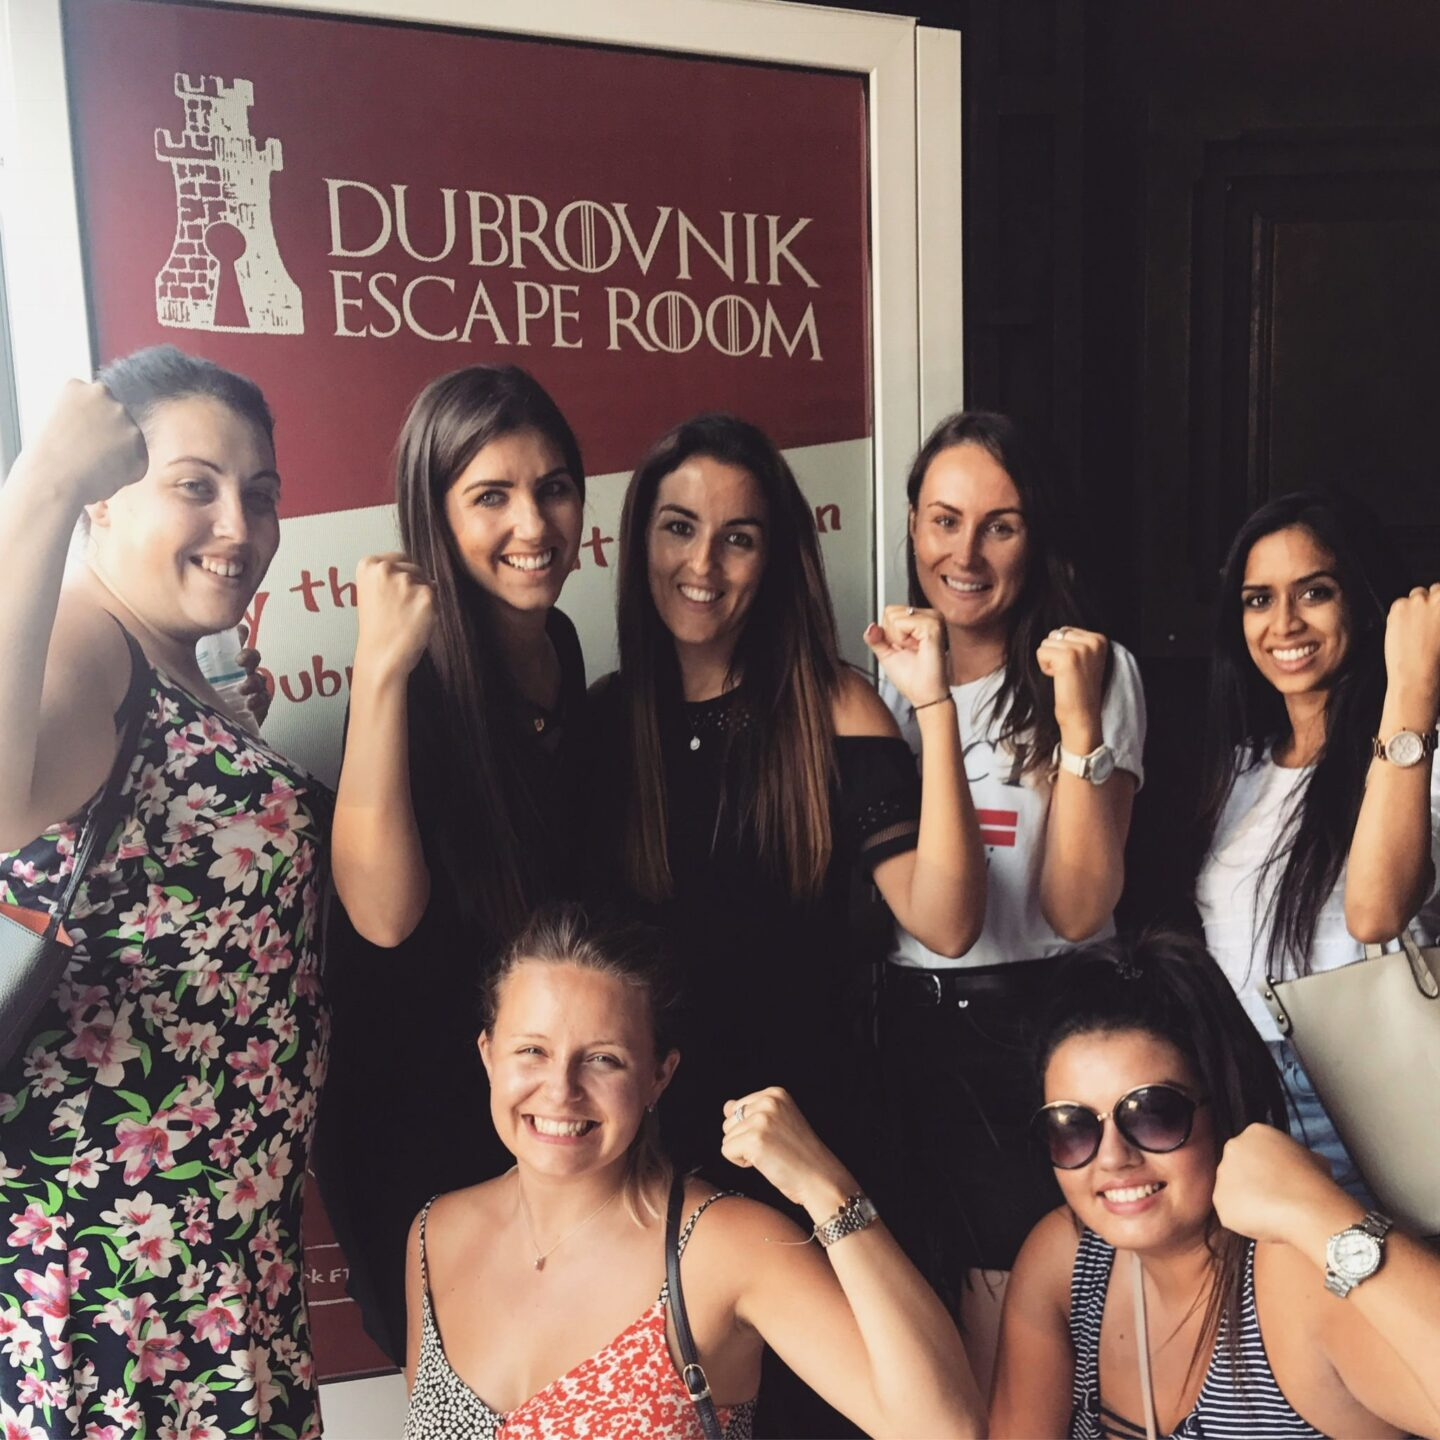 Dubrovnik Escape Rooms